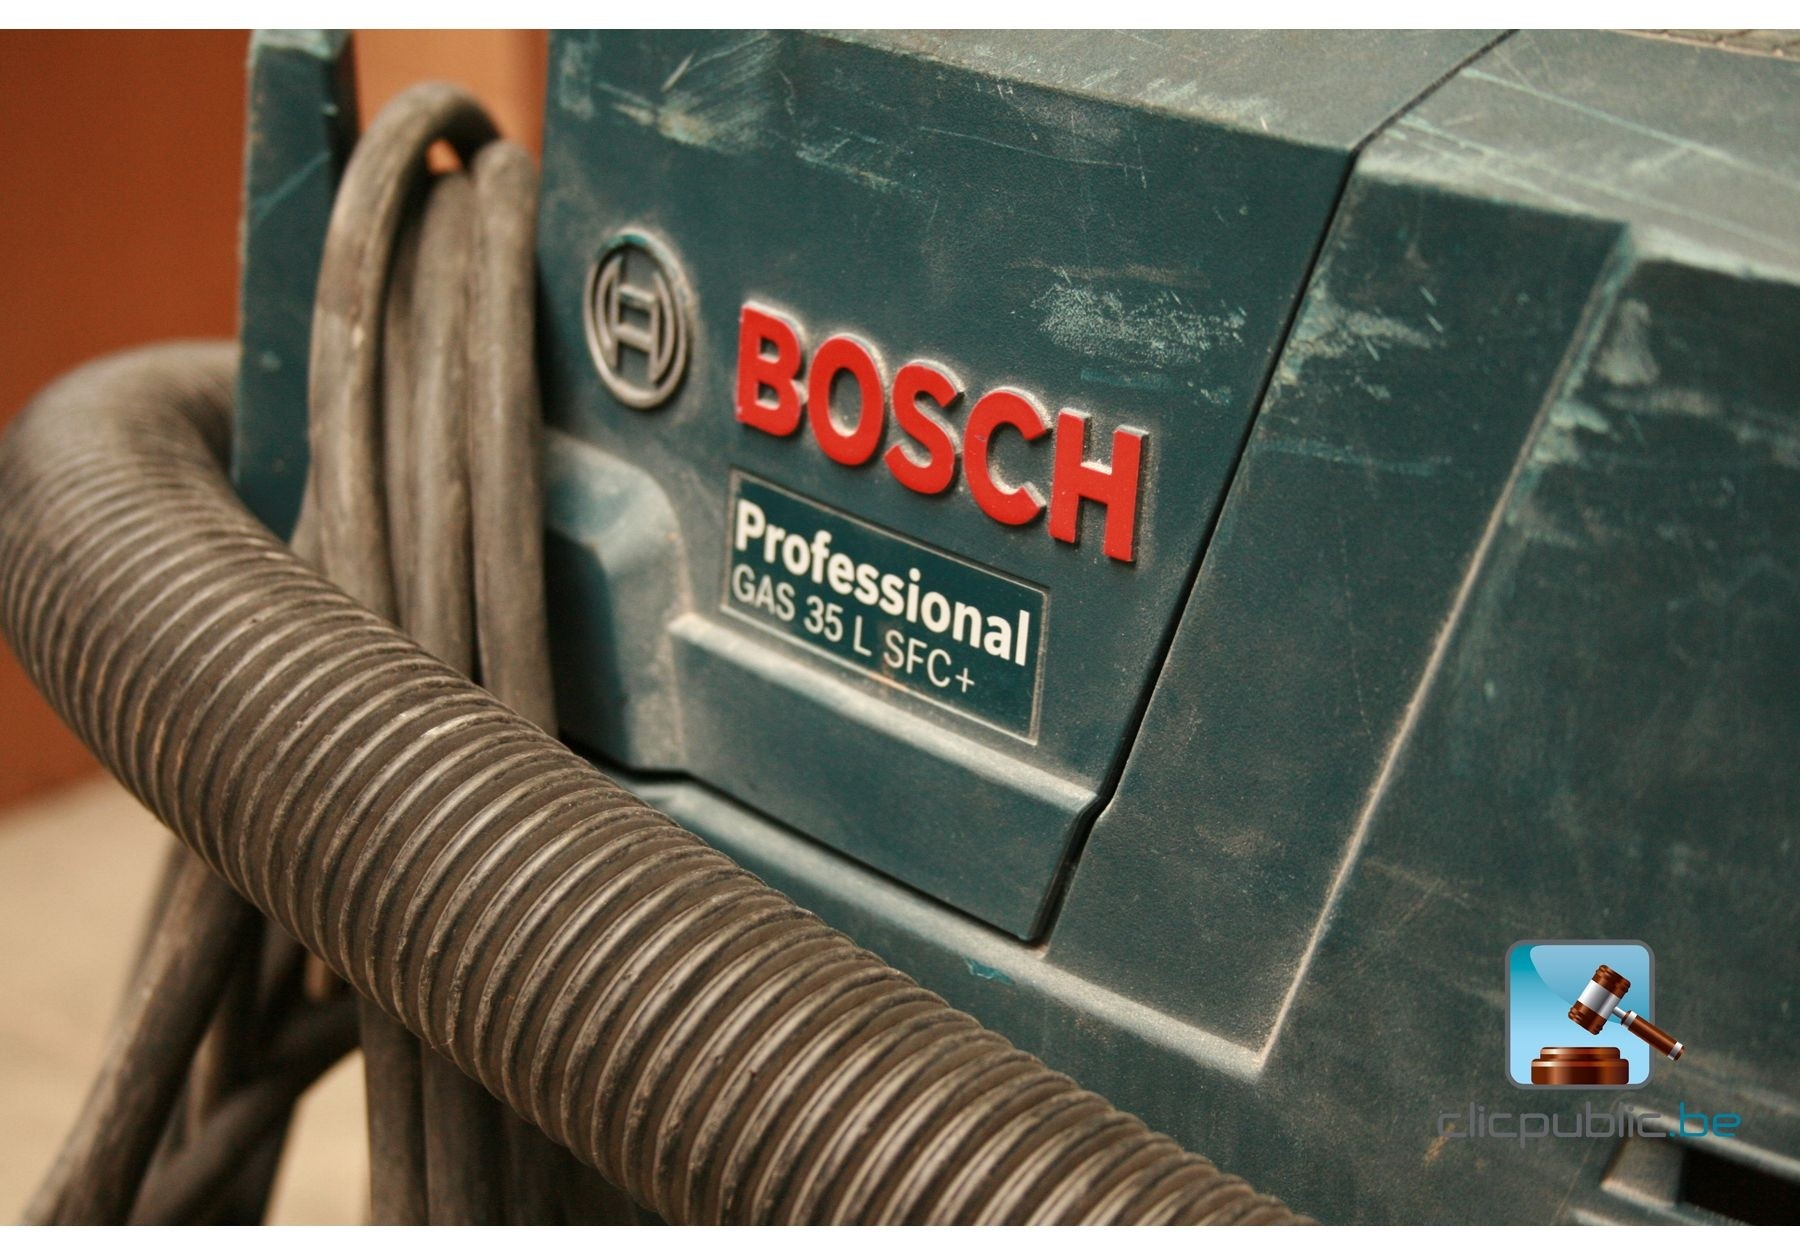 aspirateur de chantier bosch gas 35l vendre sur. Black Bedroom Furniture Sets. Home Design Ideas